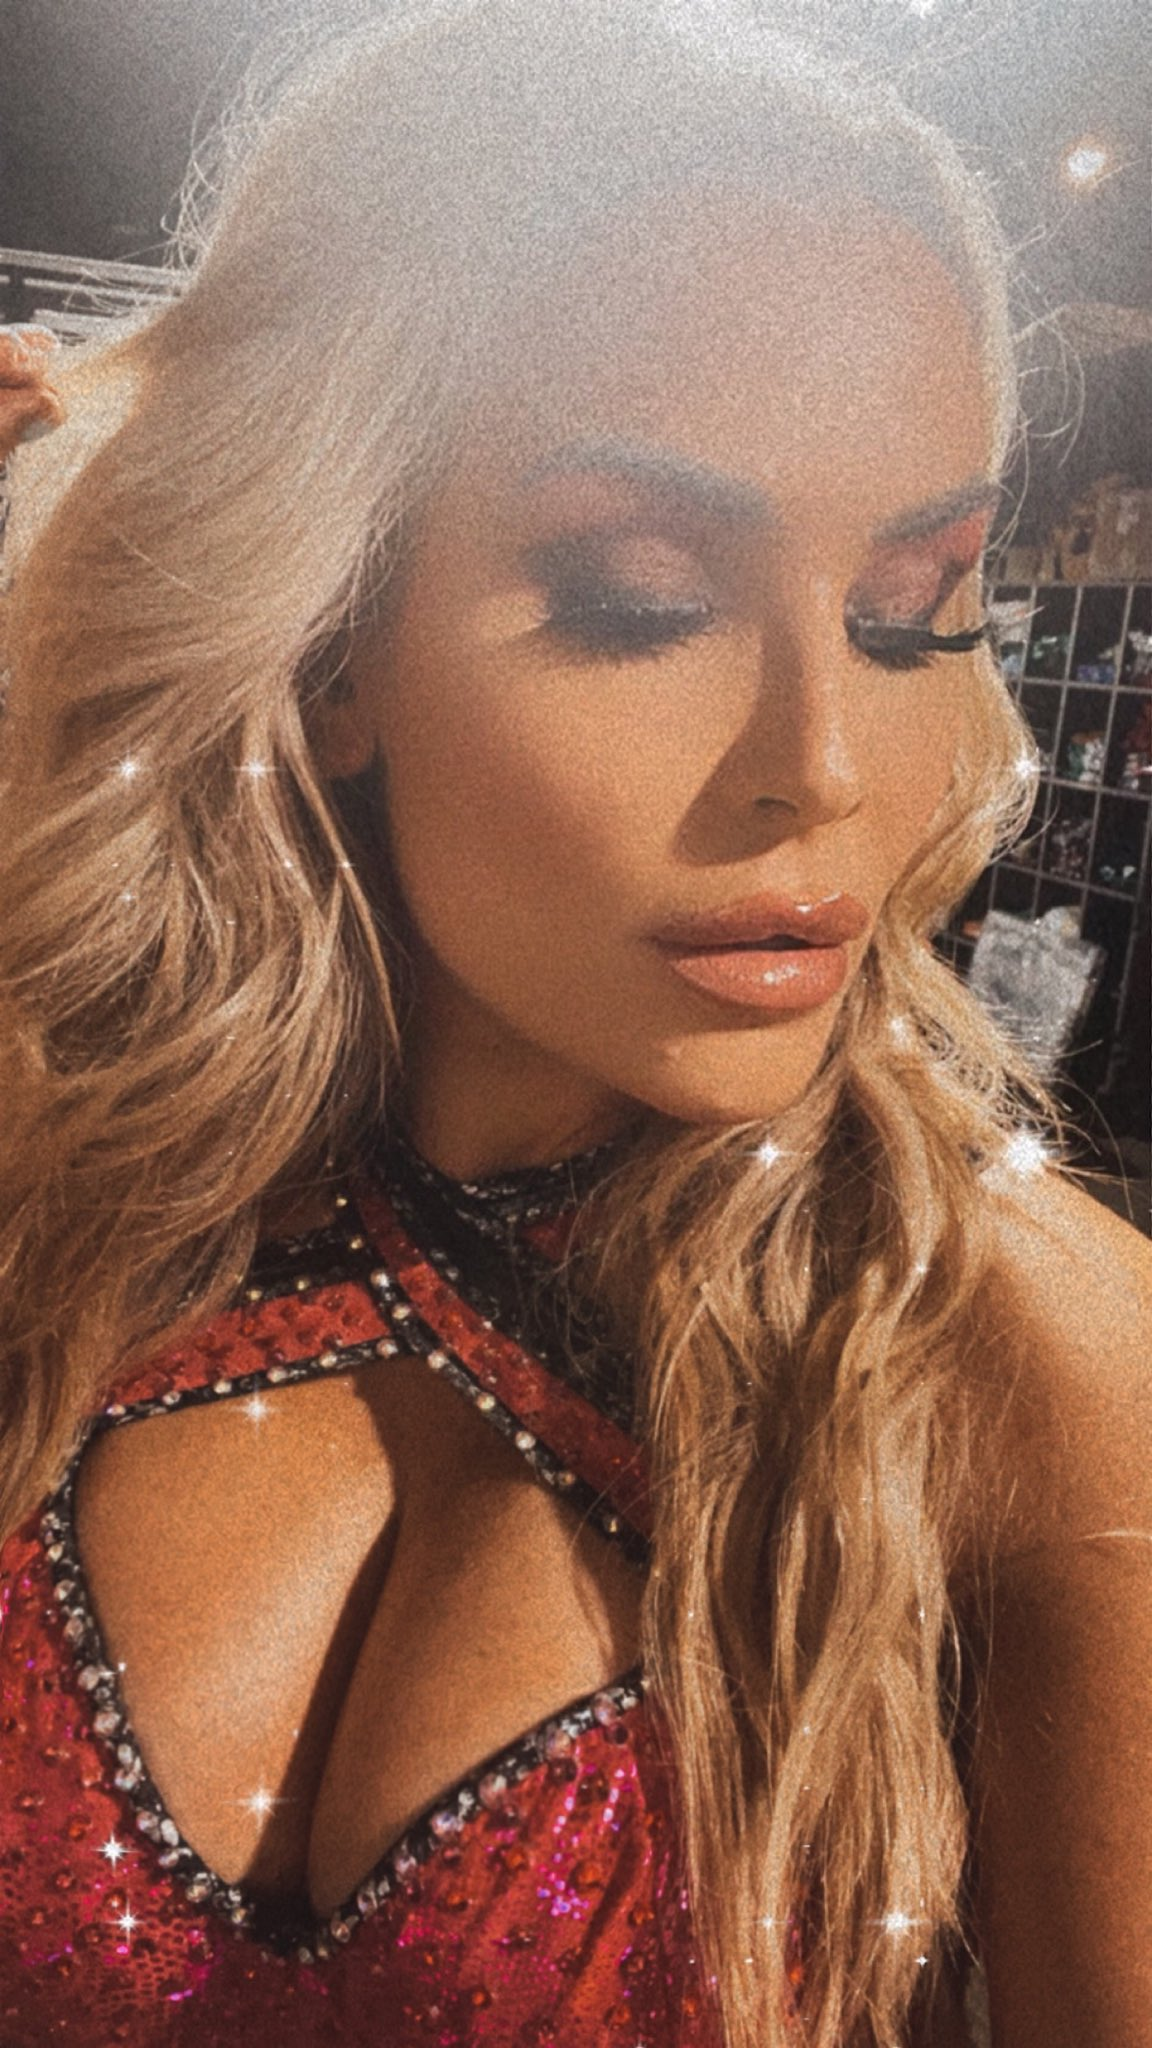 Photos: WWE Veteran Natalya Loves To Tease Fans In Revealing Outfits 15